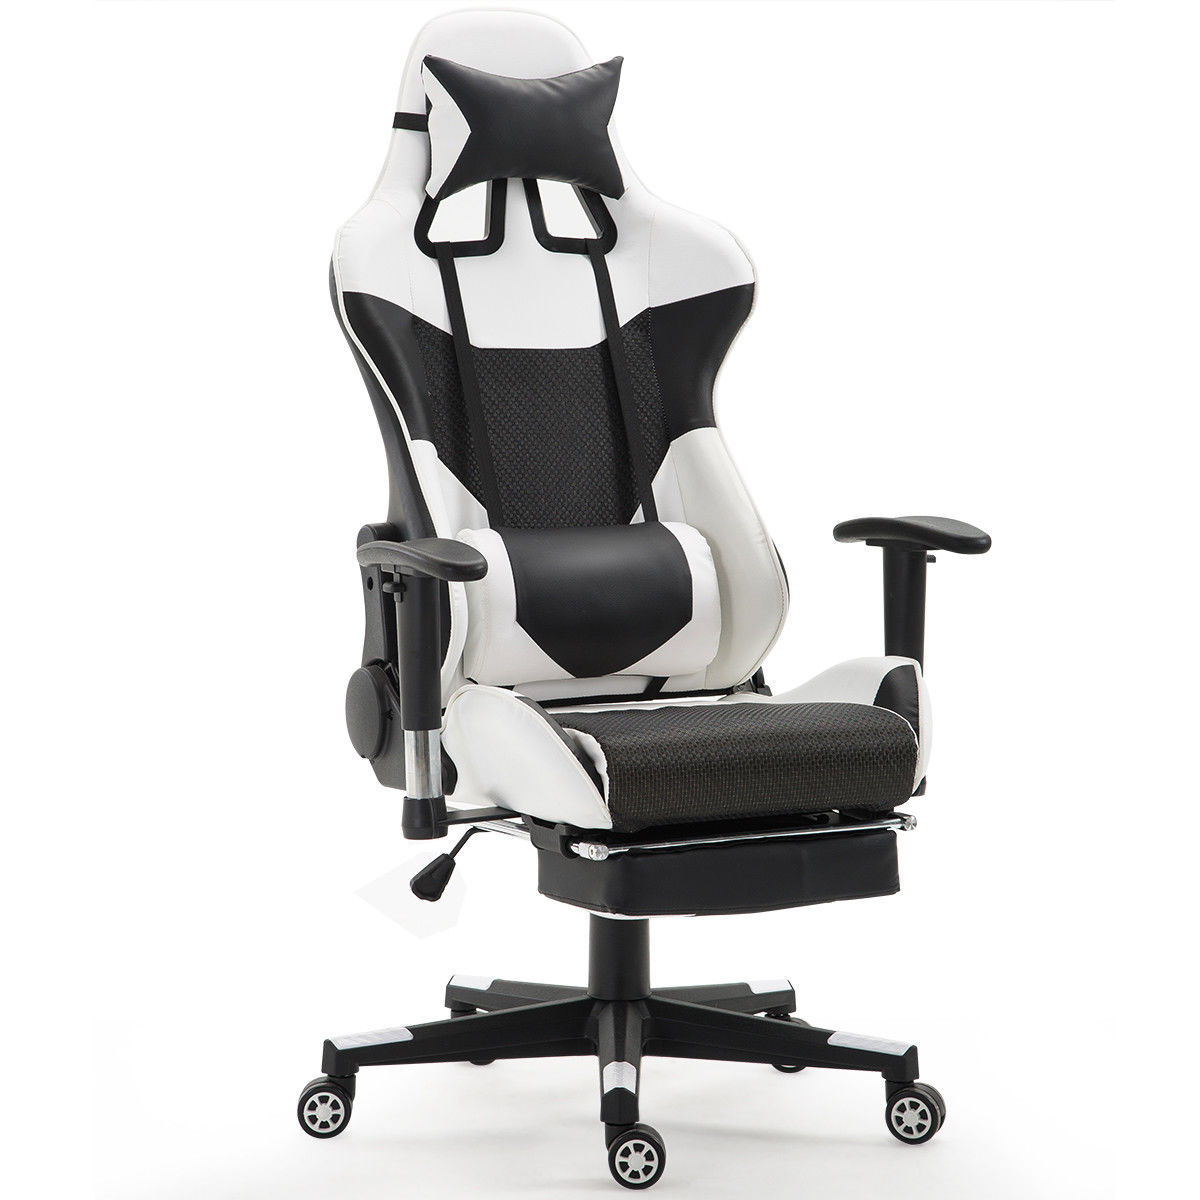 Ergonomic Chair With Footrest Where Can I Buy Covers Near Me Giantex Adjustable Gaming Modern High Back